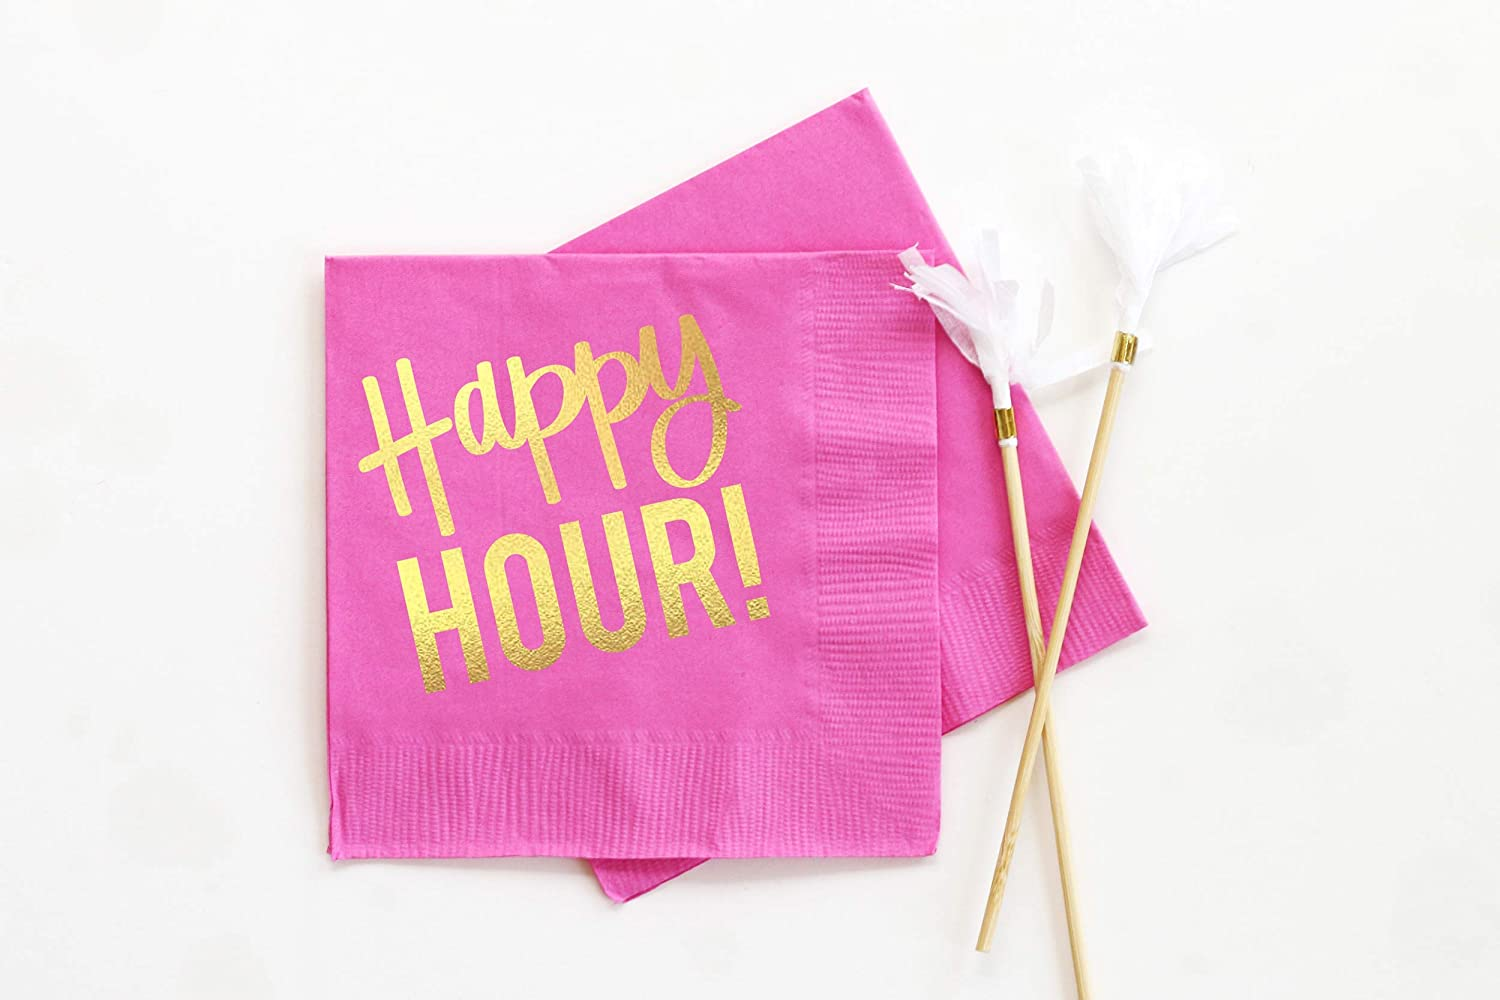 Hostess Gift Barware Birthday Party Supplies and Decorations Happy Hour Cocktail Napkins